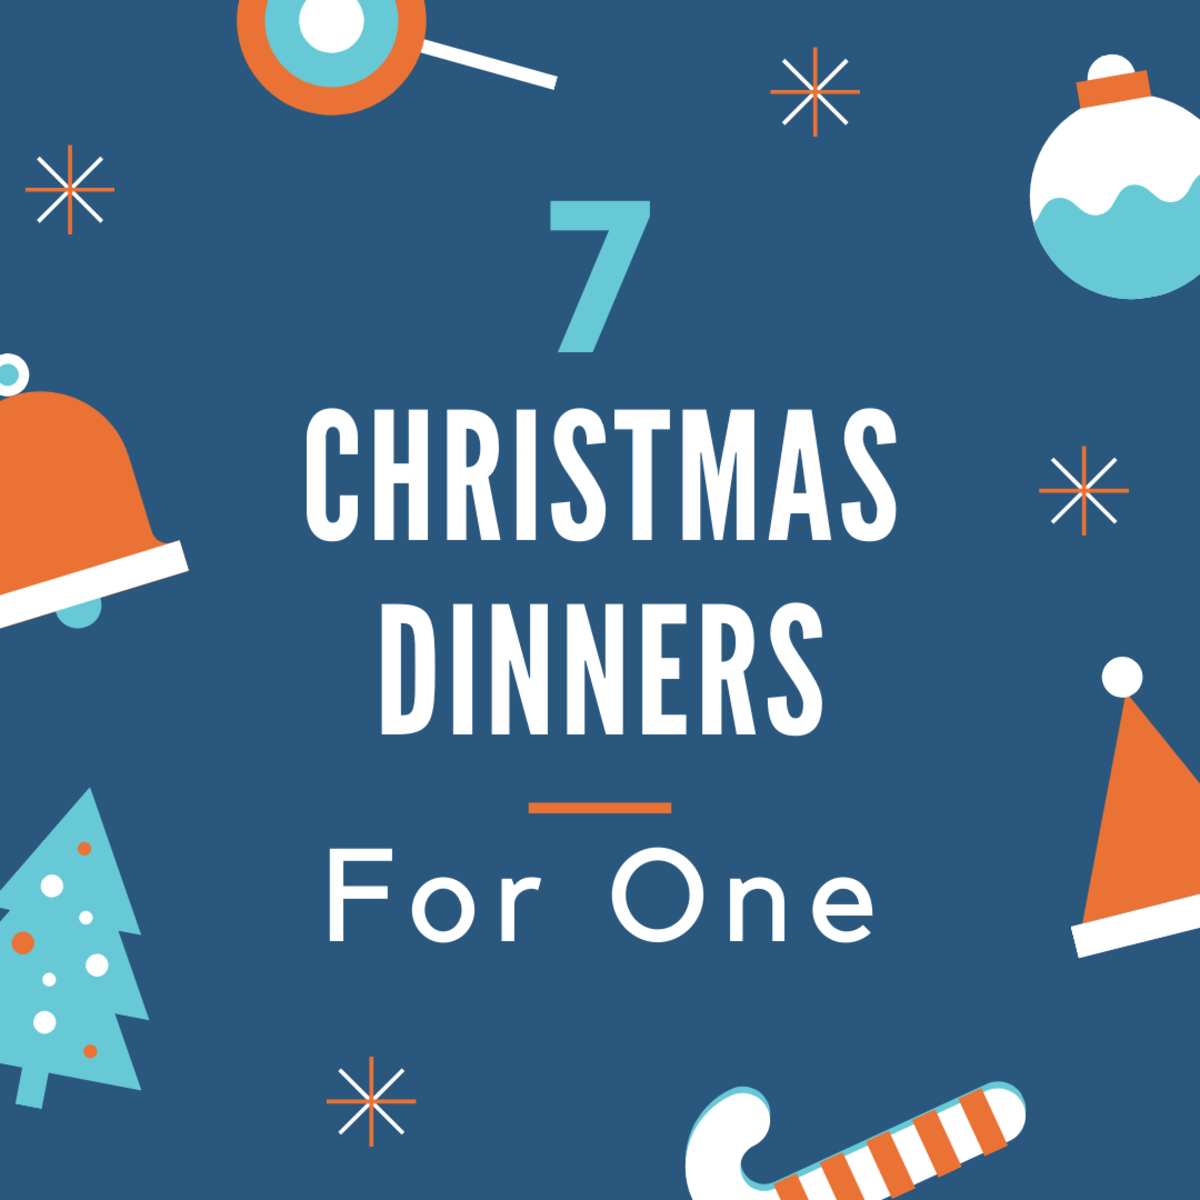 Christmas Dinner for One: 7 Delicious Meal Ideas